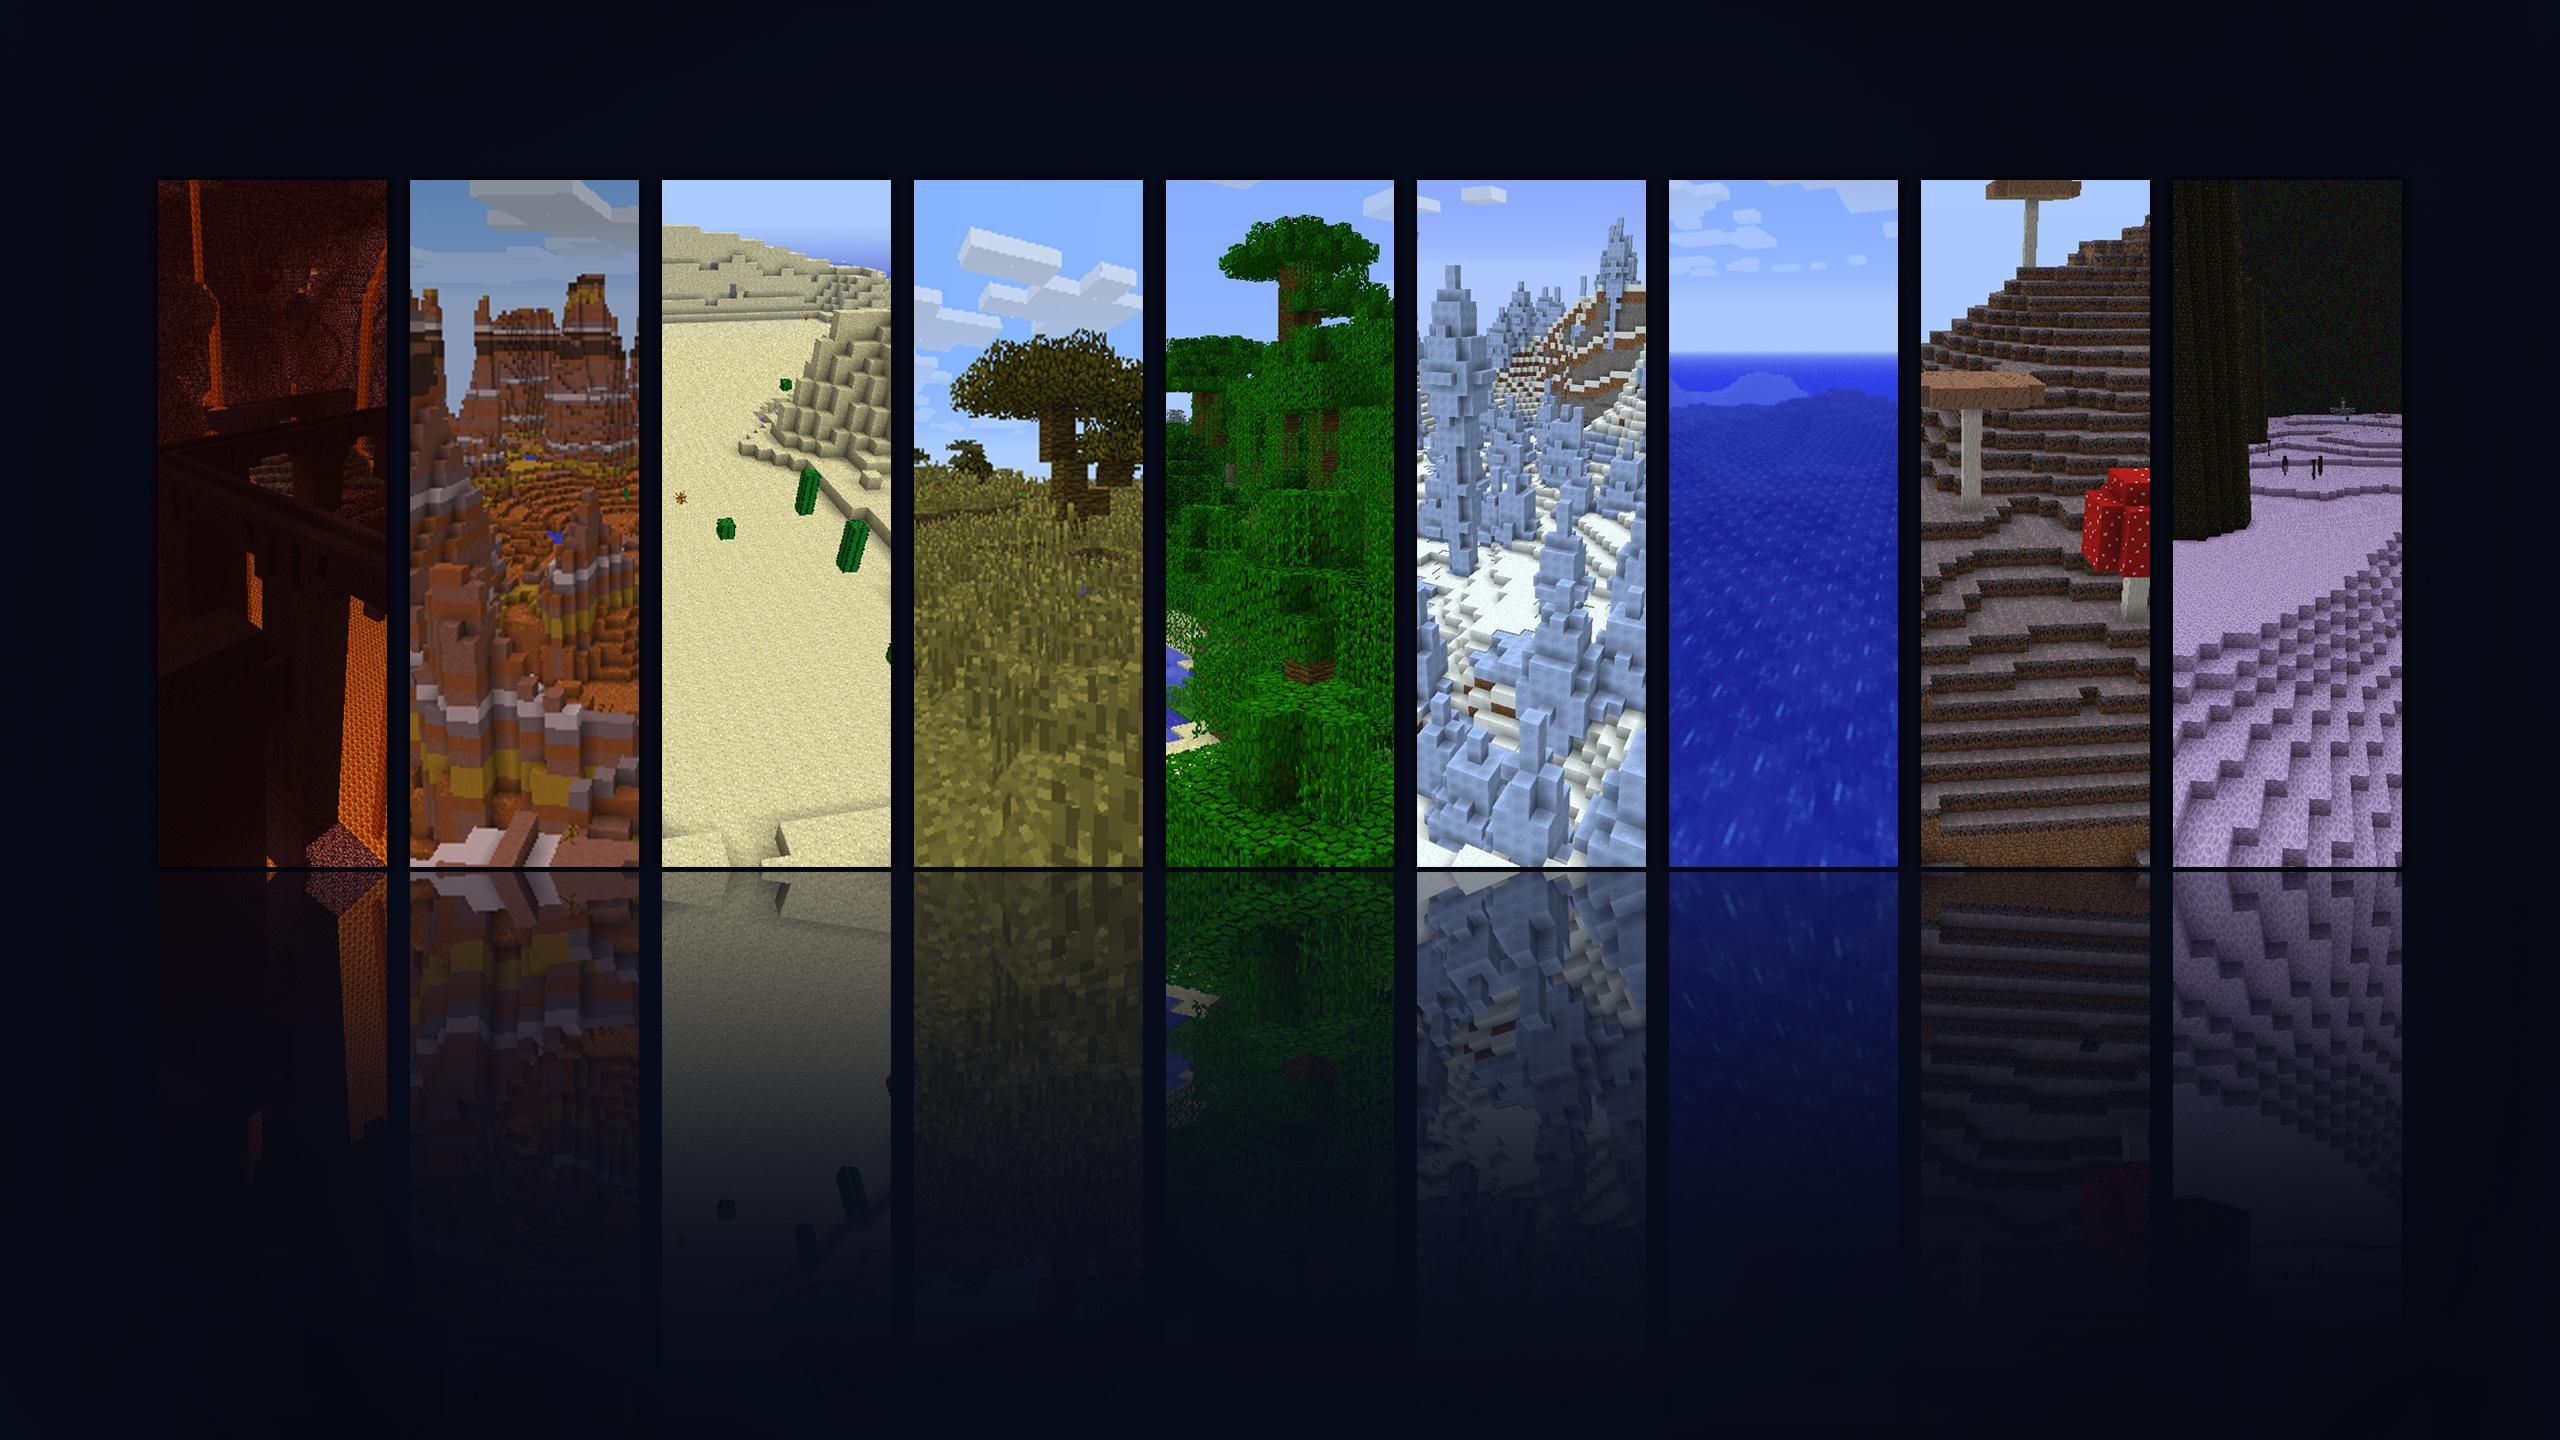 Minecraft Wallpaper 2560x1440